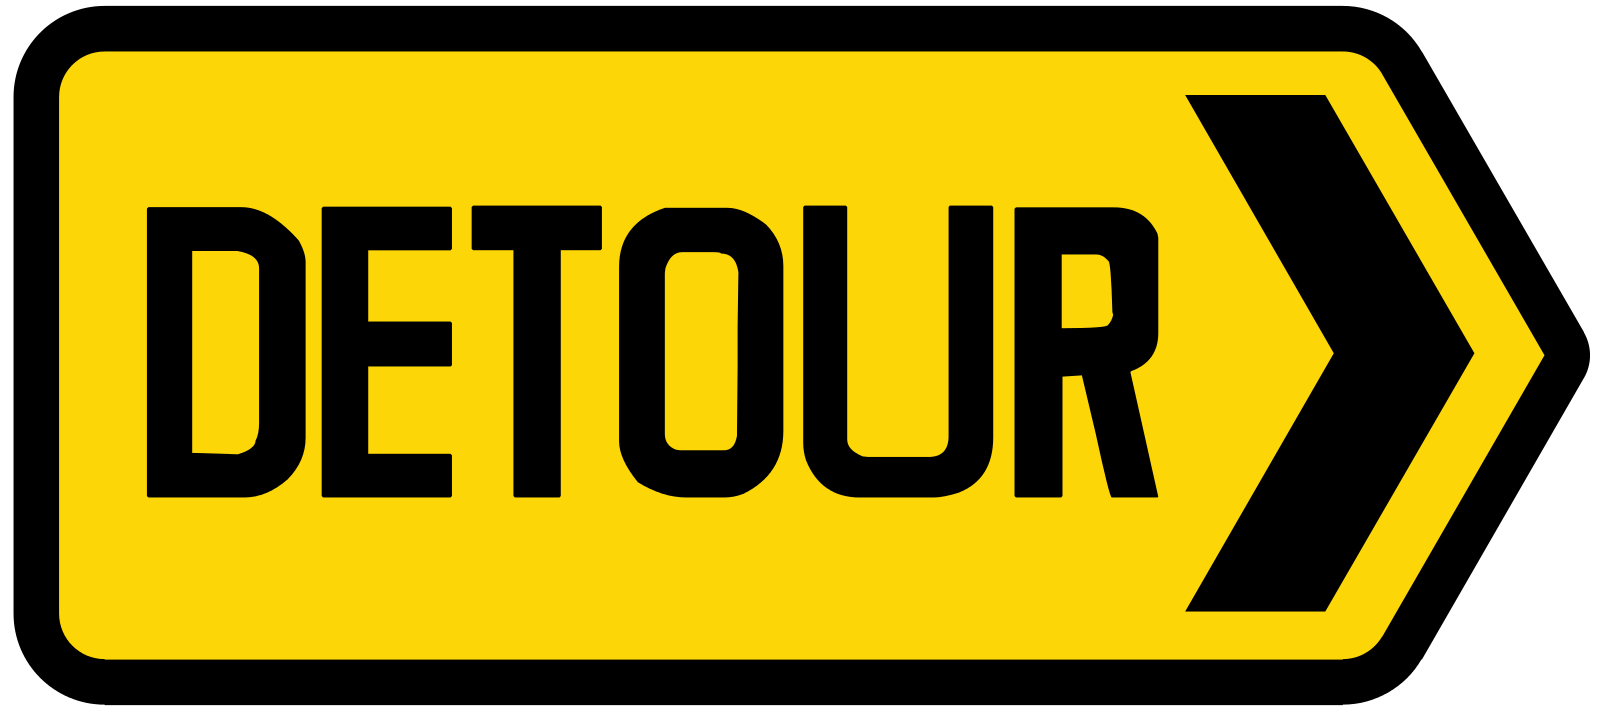 Detour in direction indicated at junction (Right)